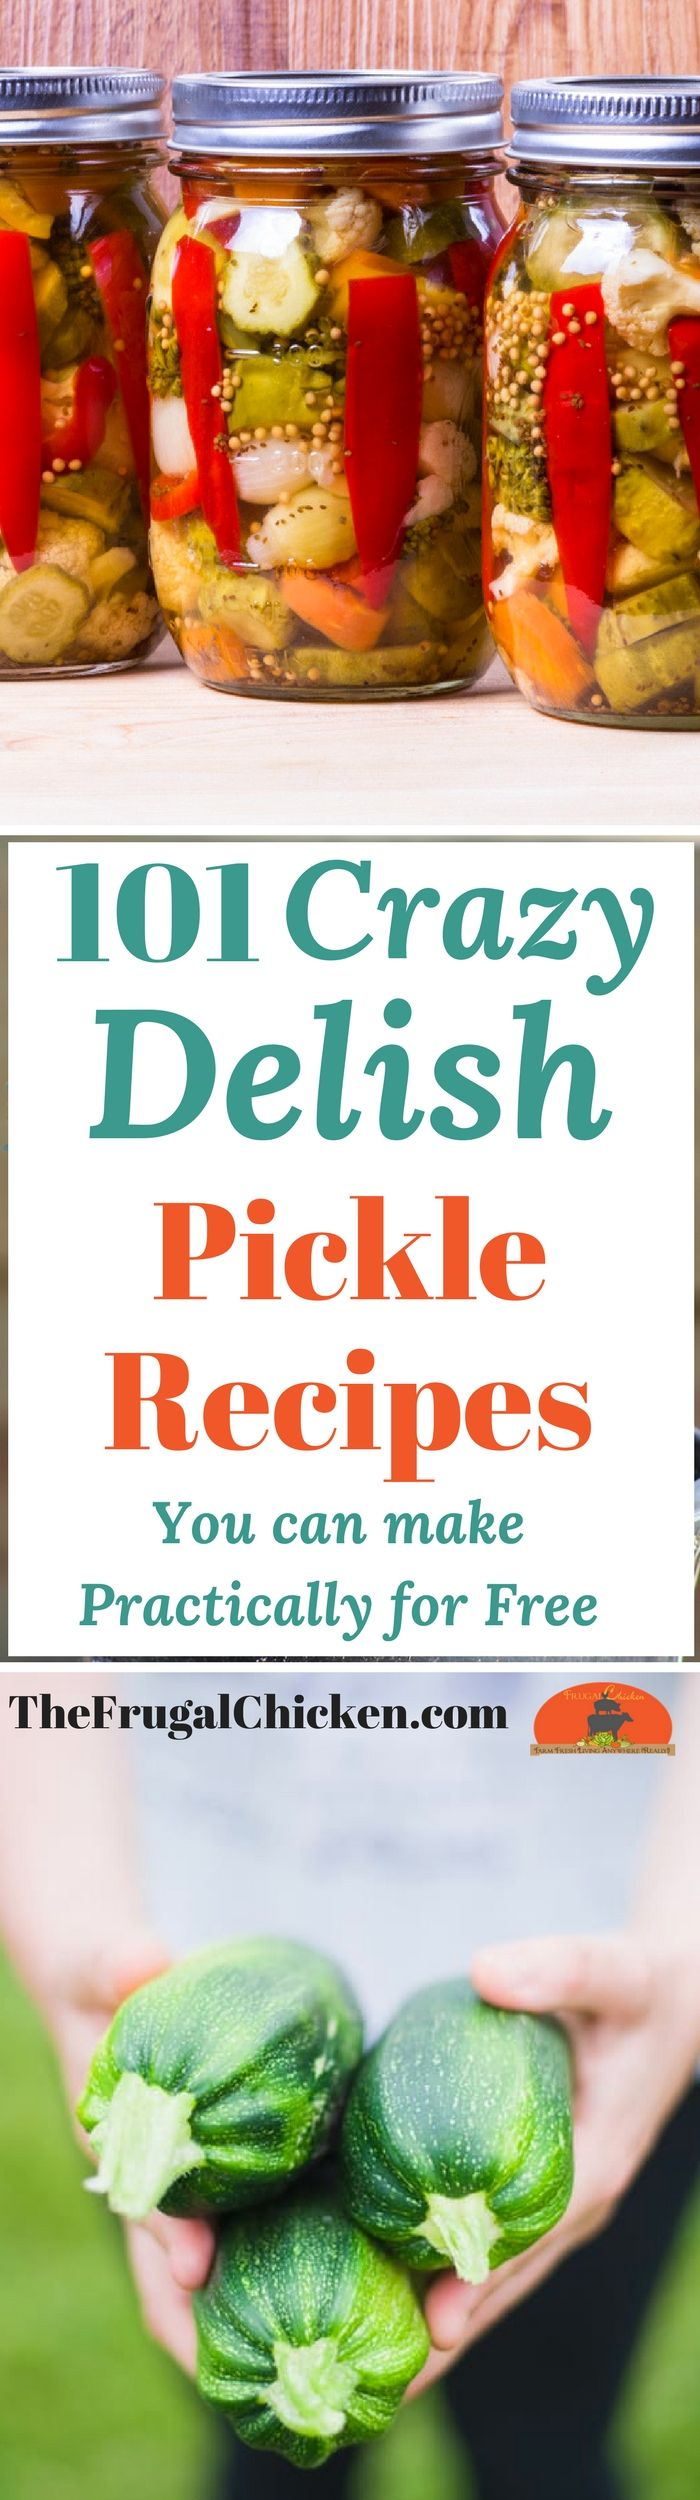 how to make and can pickles